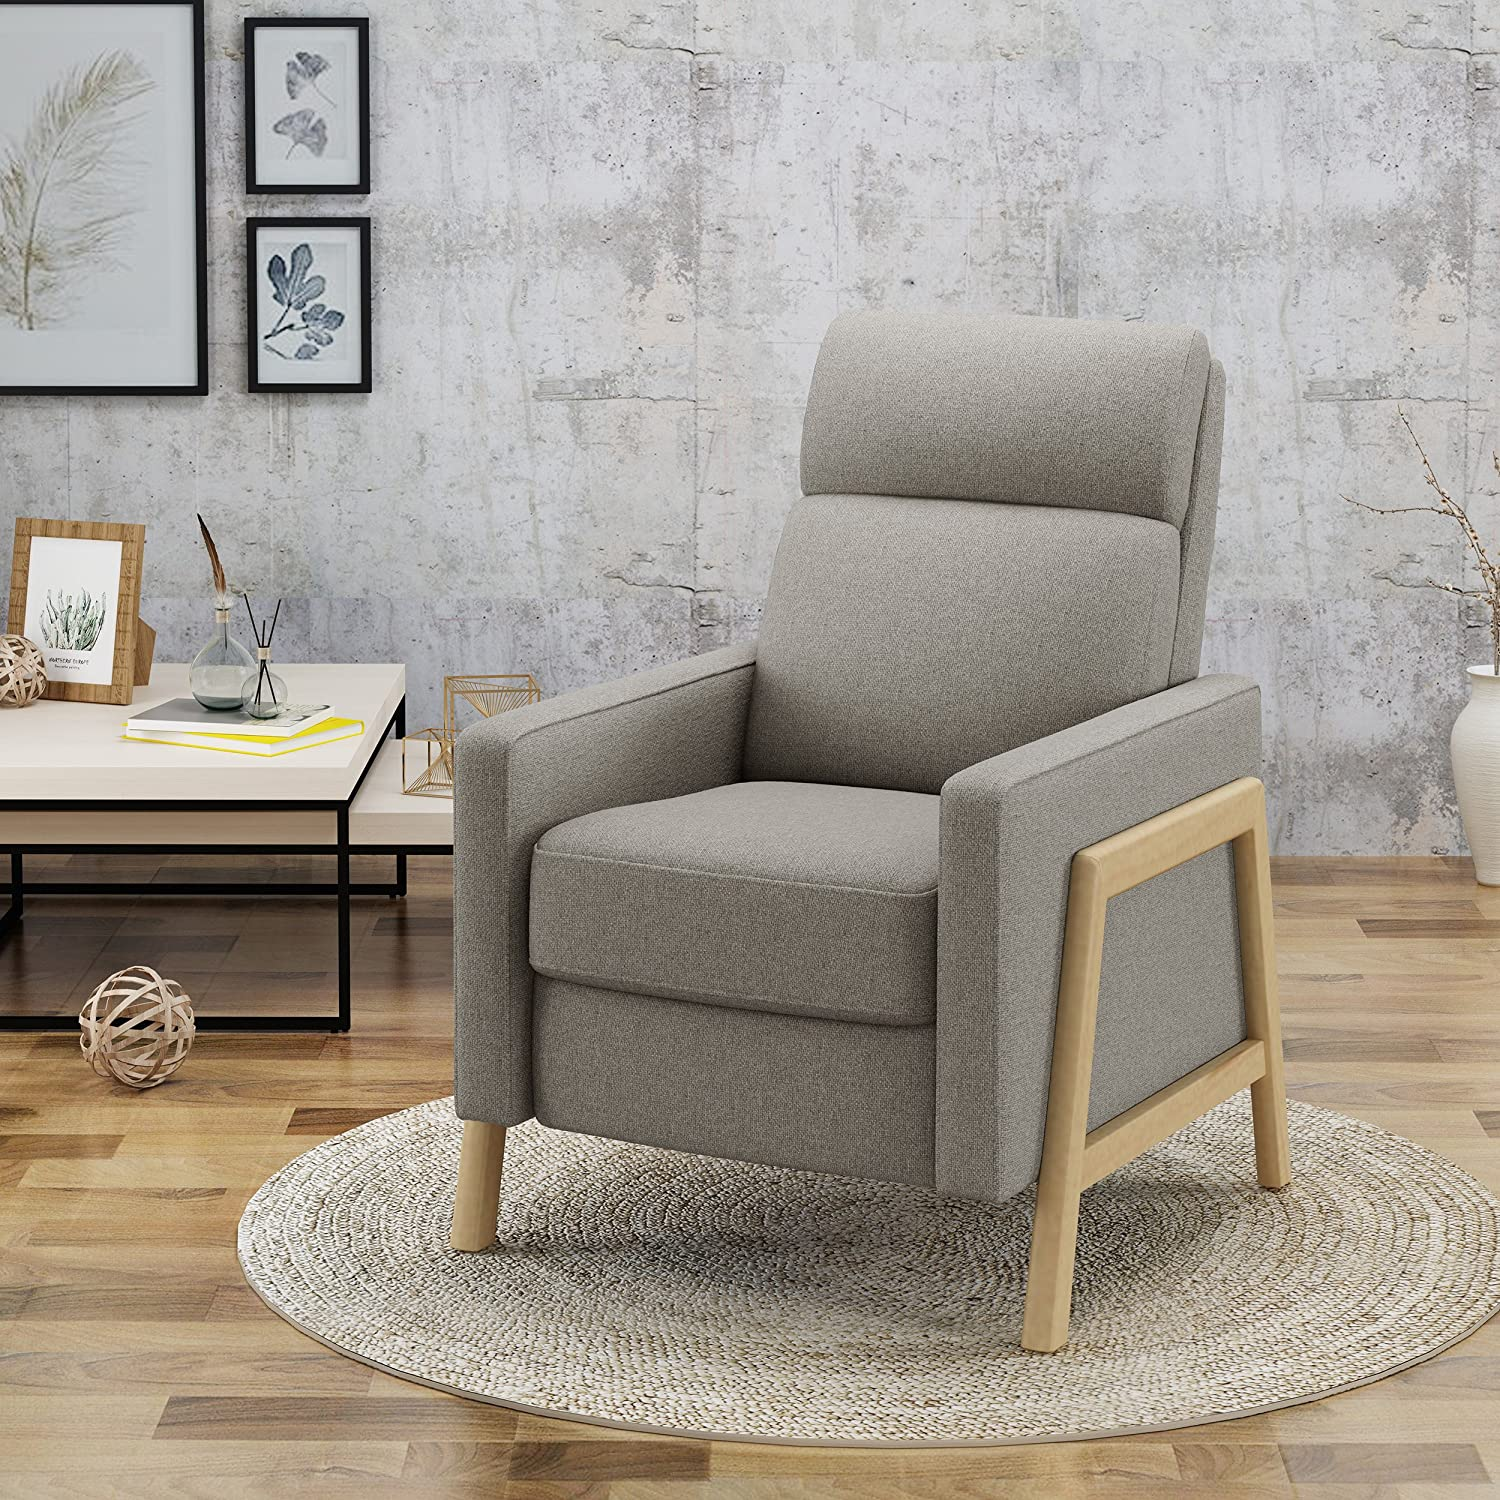 Amazon com great deal furniture chris mid century modern fabric recliner in beige kitchen dining